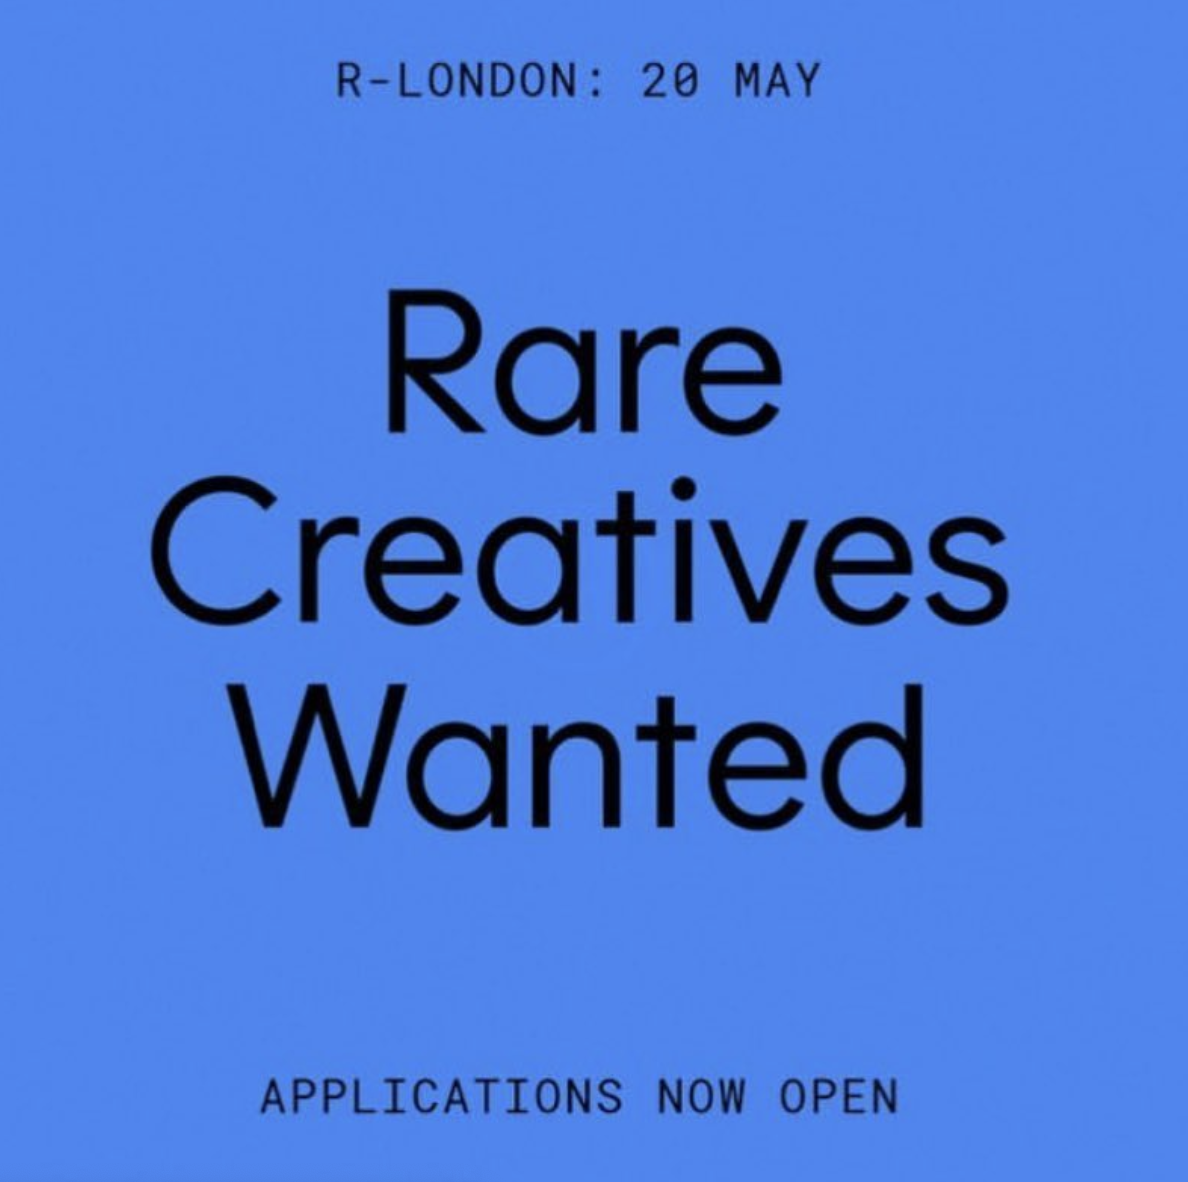 GOOGLE RARE  PARTNERSHIP  Excited to announce that The Other Box has teamed up with Google x Rare London as part of the D&AD festival to give the opportunity to 5 creatives from underrepresented backgrounds full access to D&AD festival.  Apply here.